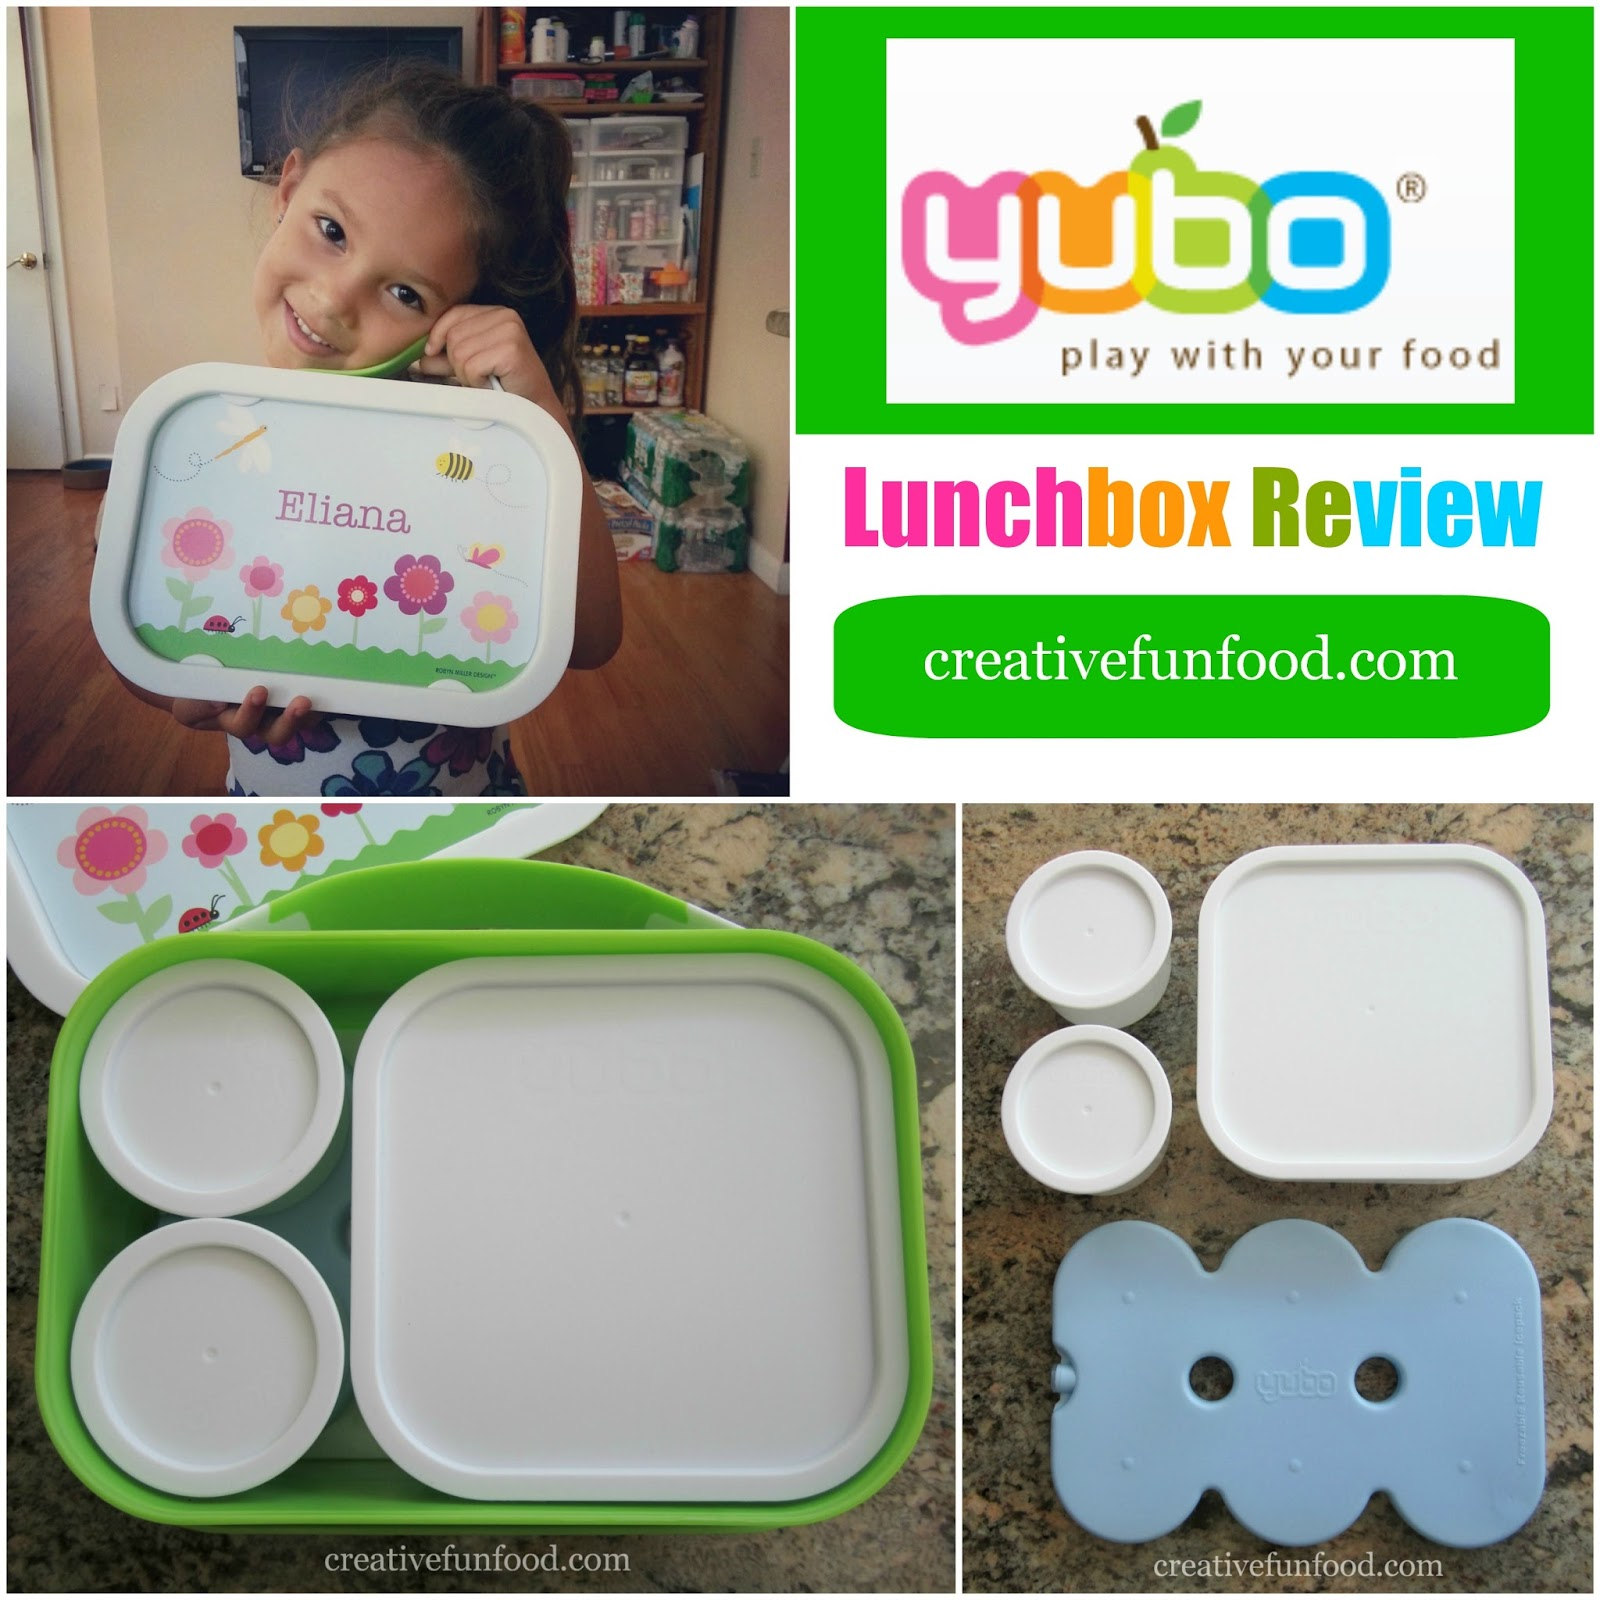 creative food yubo lunchbox review. Black Bedroom Furniture Sets. Home Design Ideas